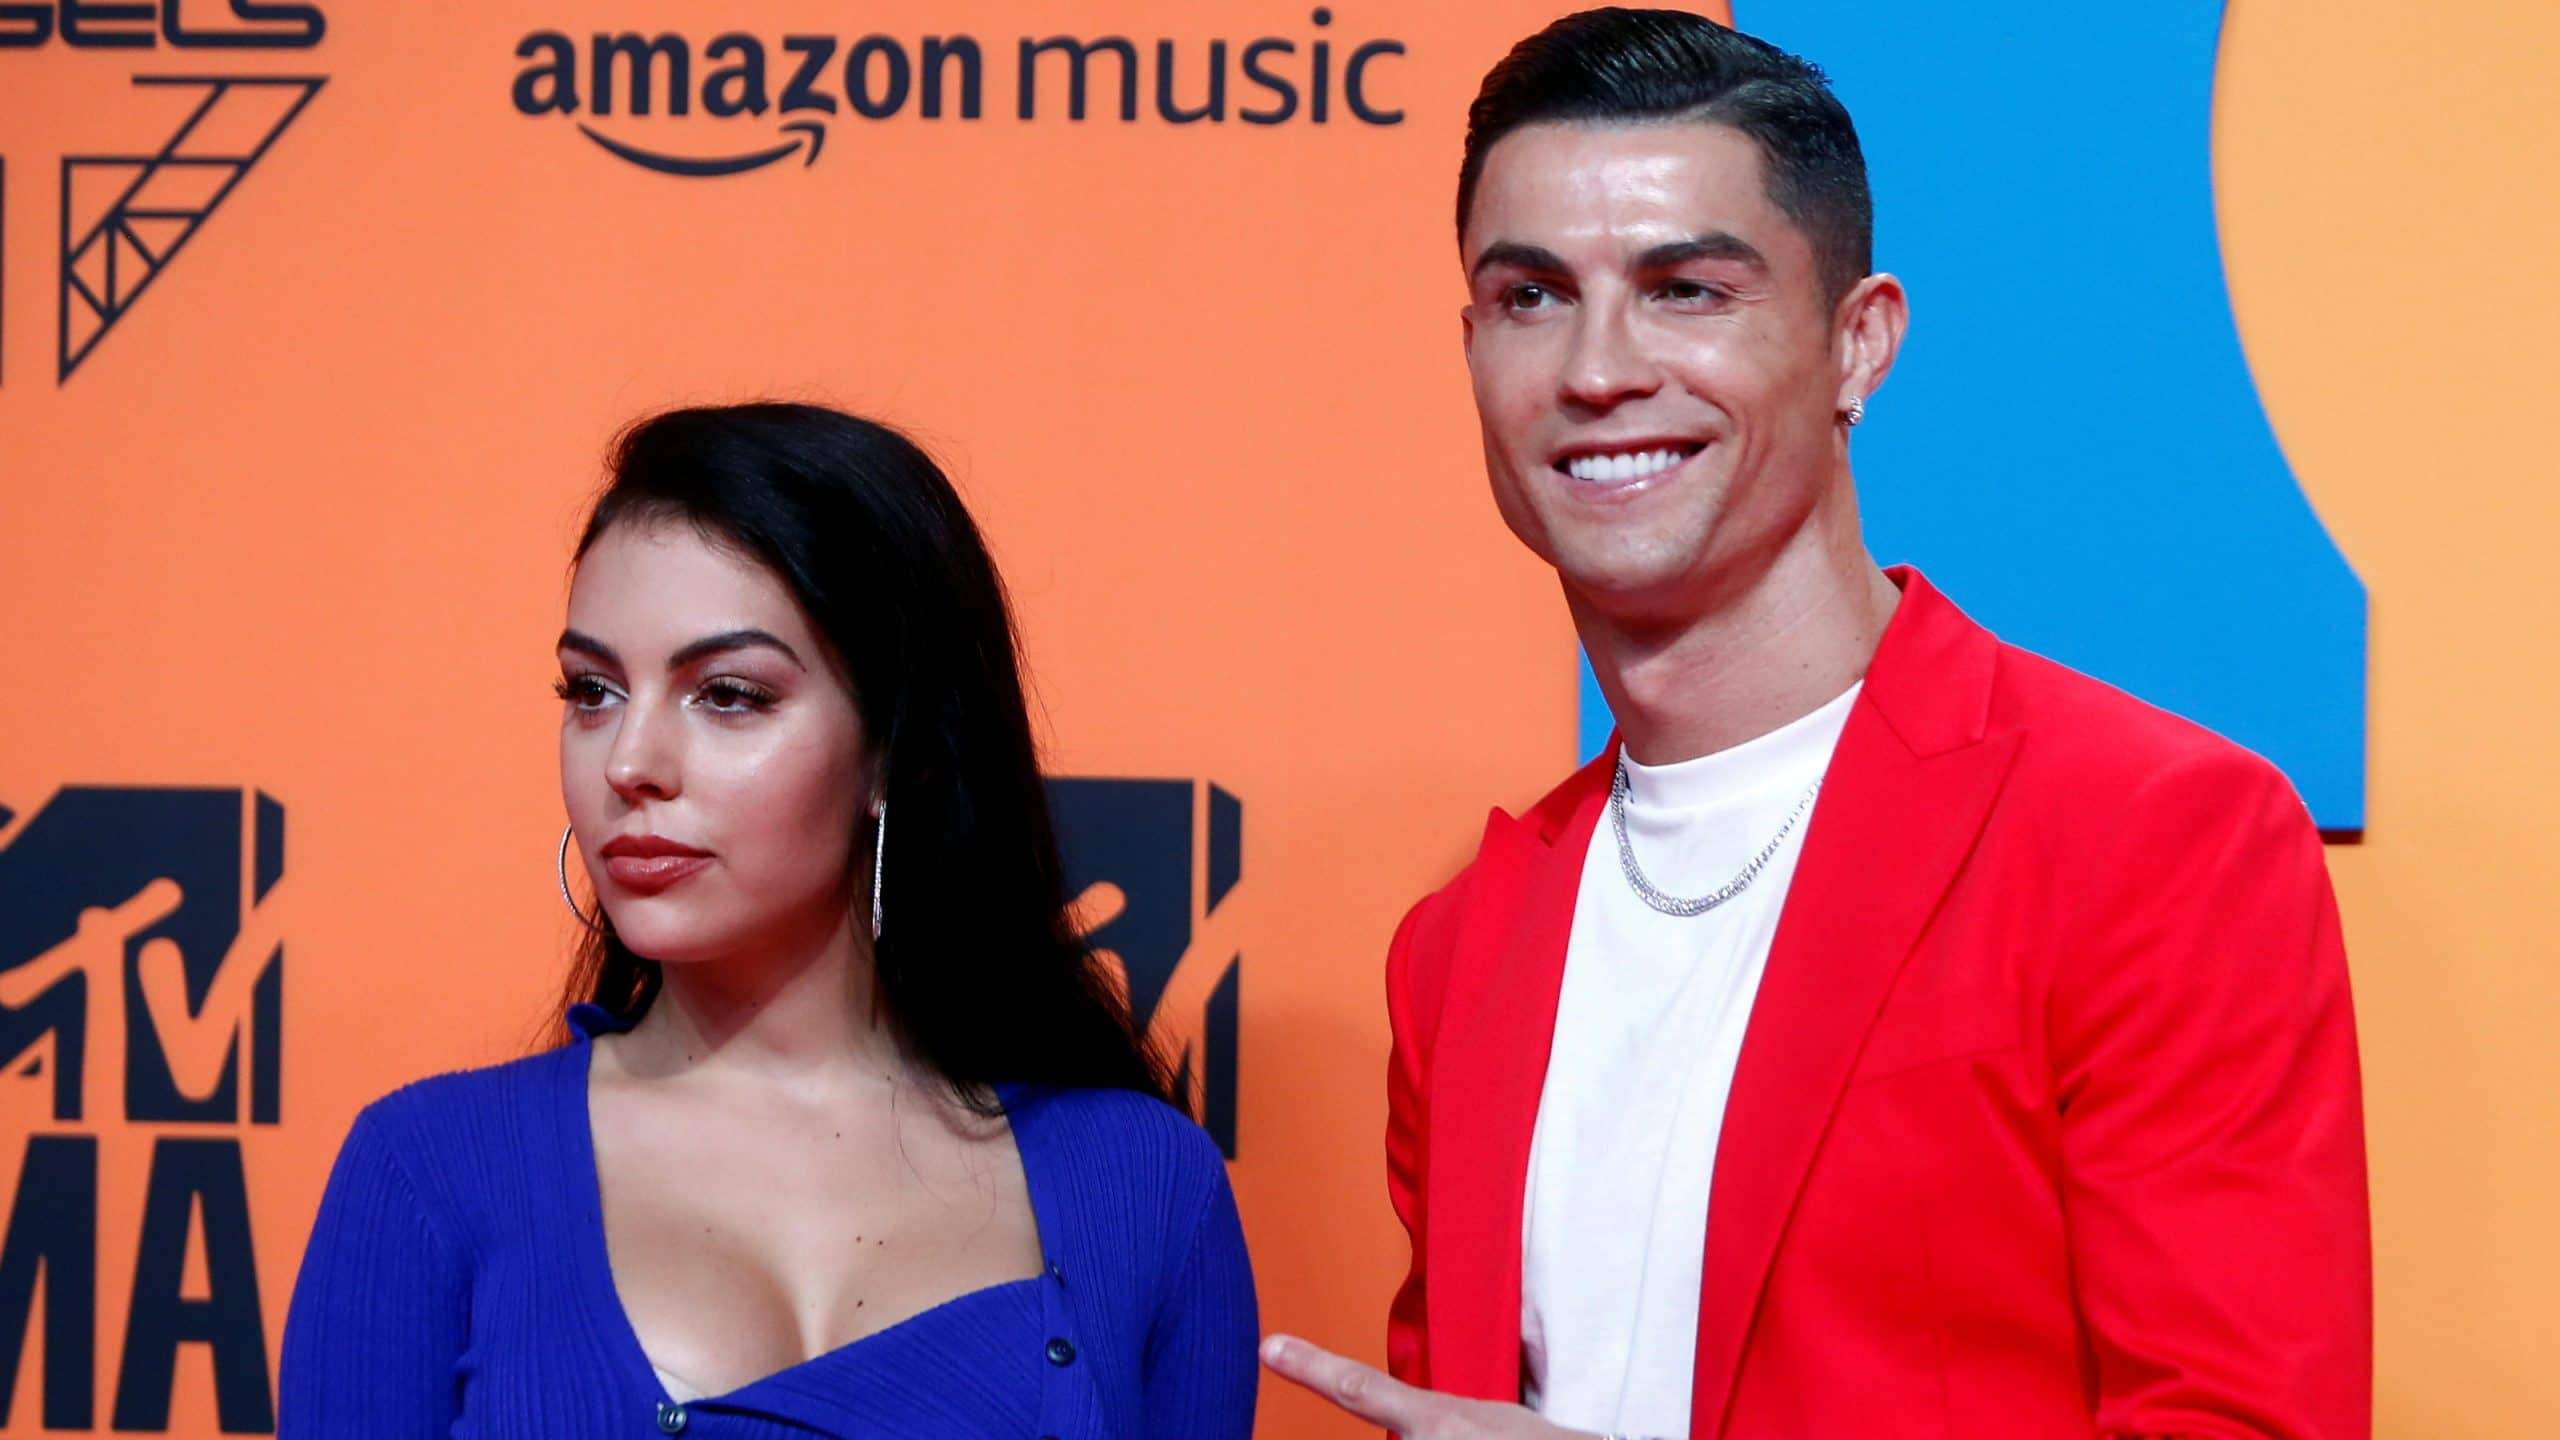 Ronaldo's Girlfriend To Star In Netflix Reality TV Documentary About Life